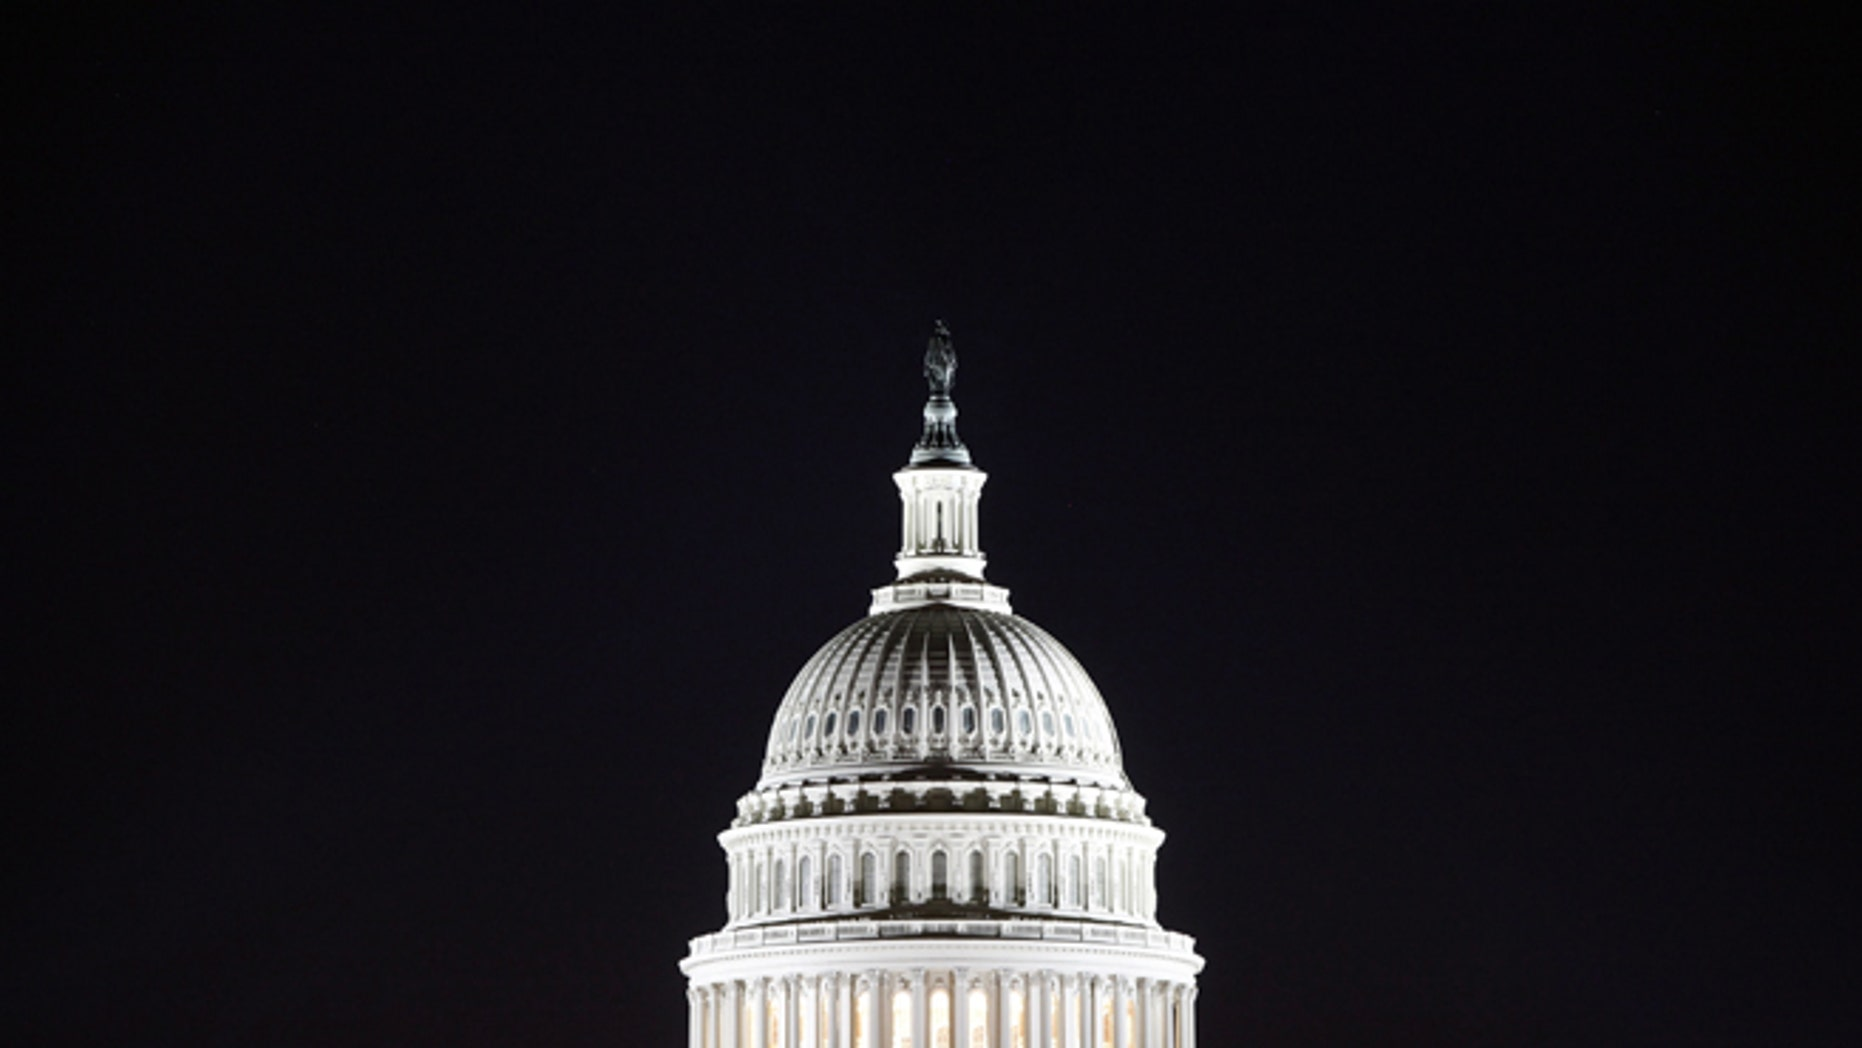 The U.S. Capitol dome before dawn. (REUTERS)